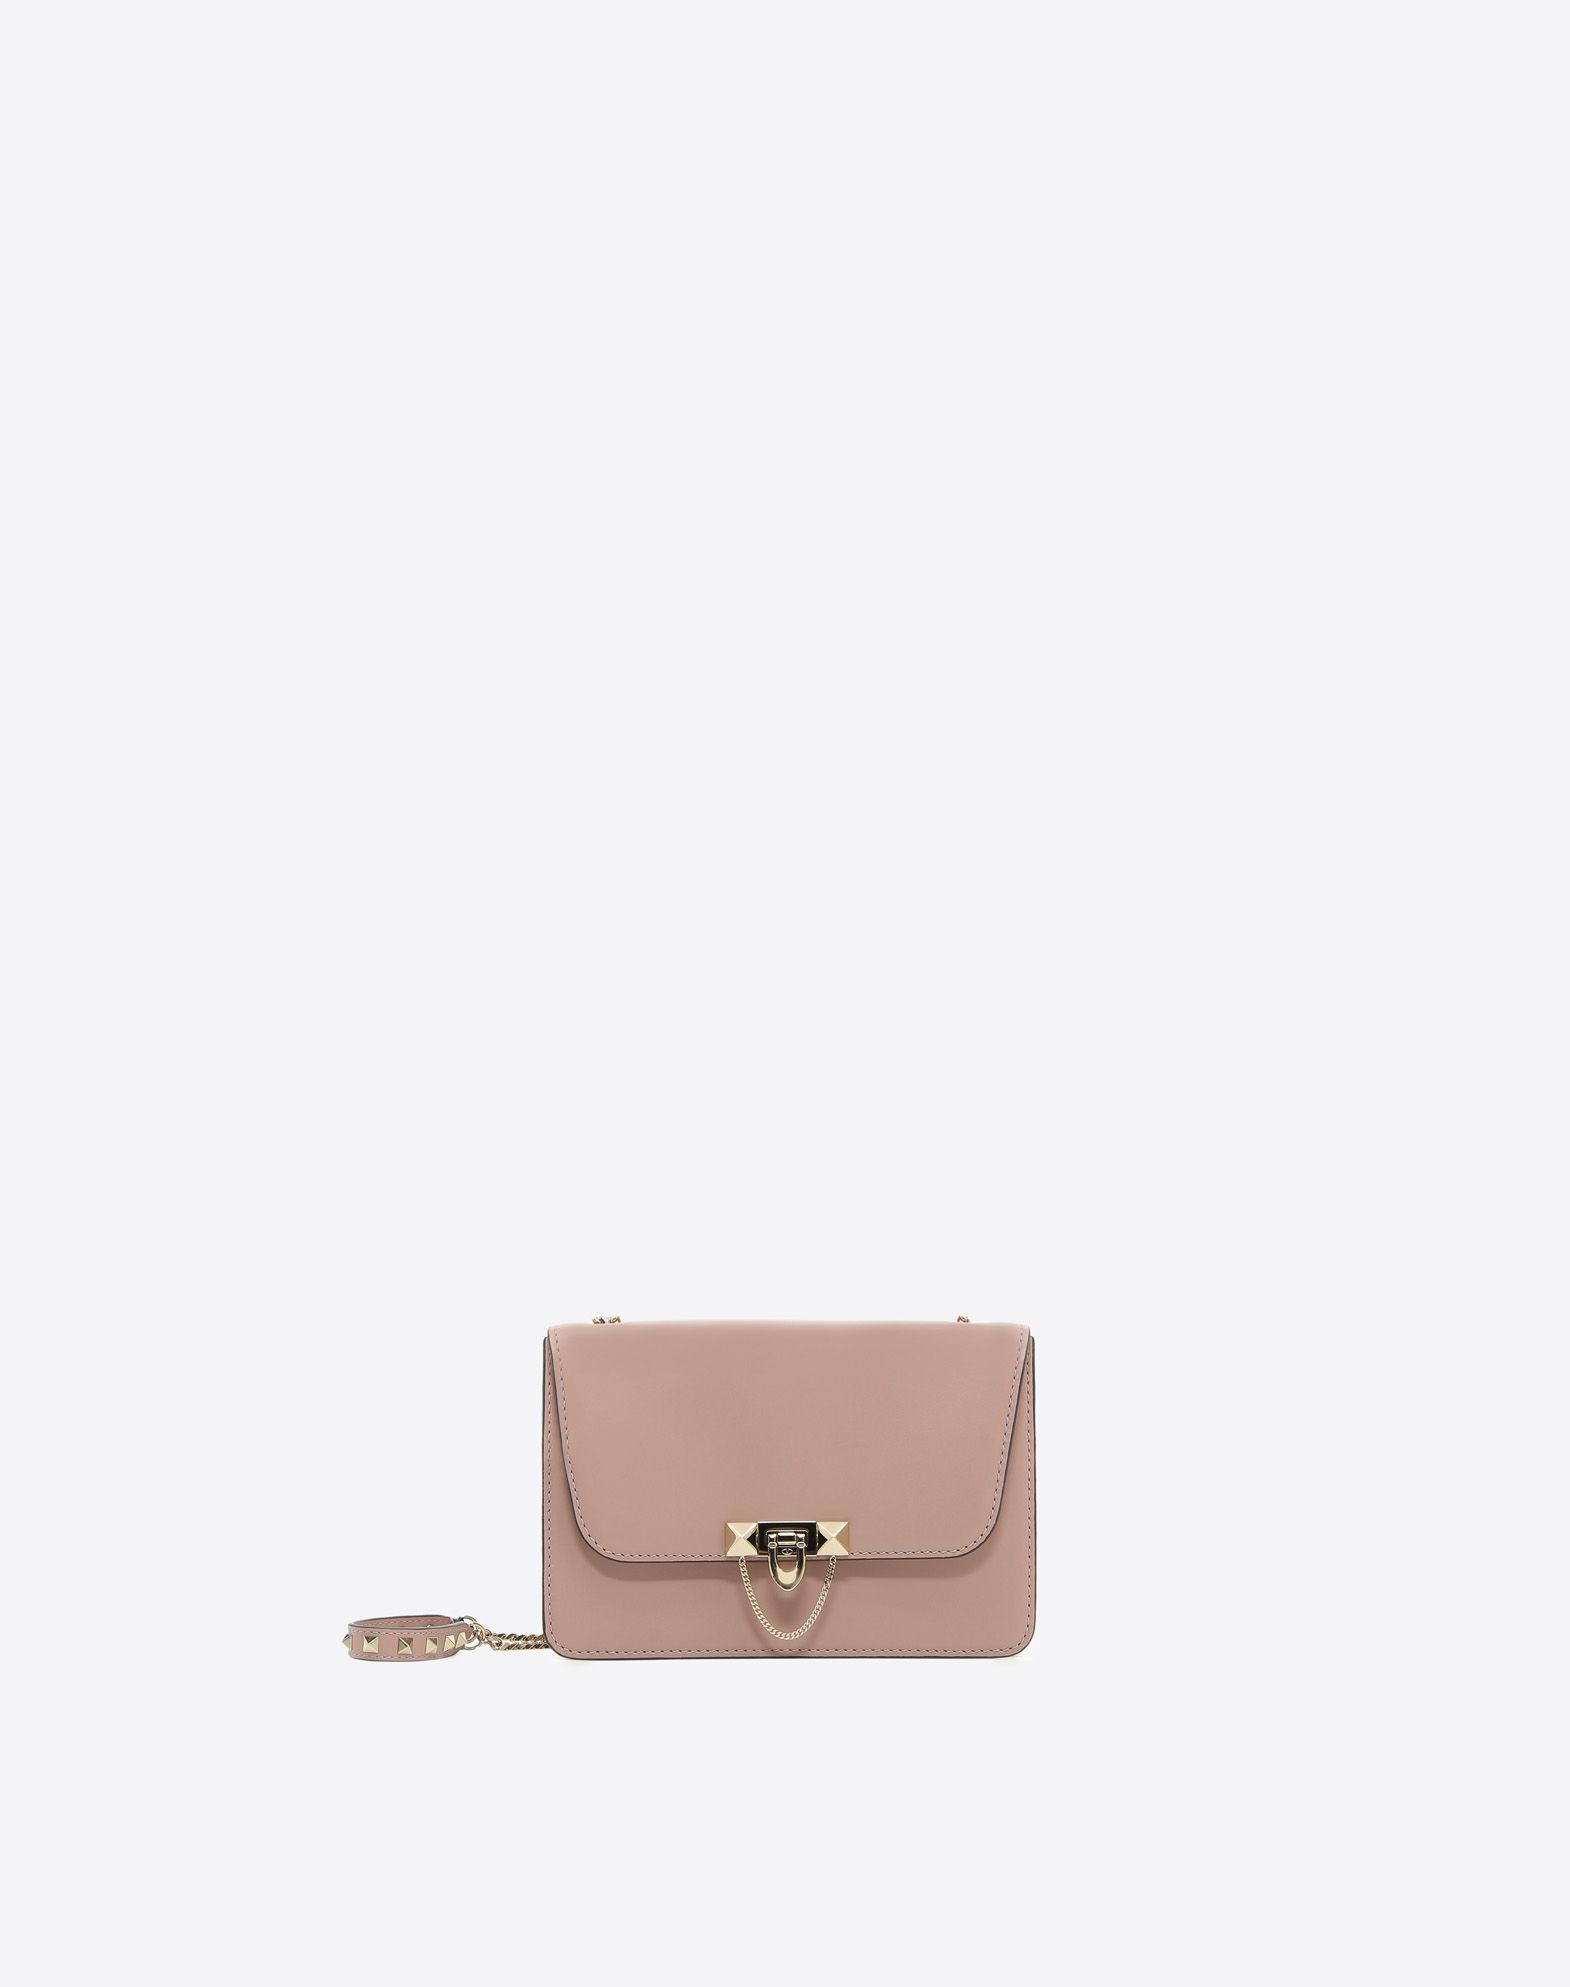 VALENTINO Logo Studs Solid color Framed closure Metallic straps Internal pockets External pocket  45371809ut